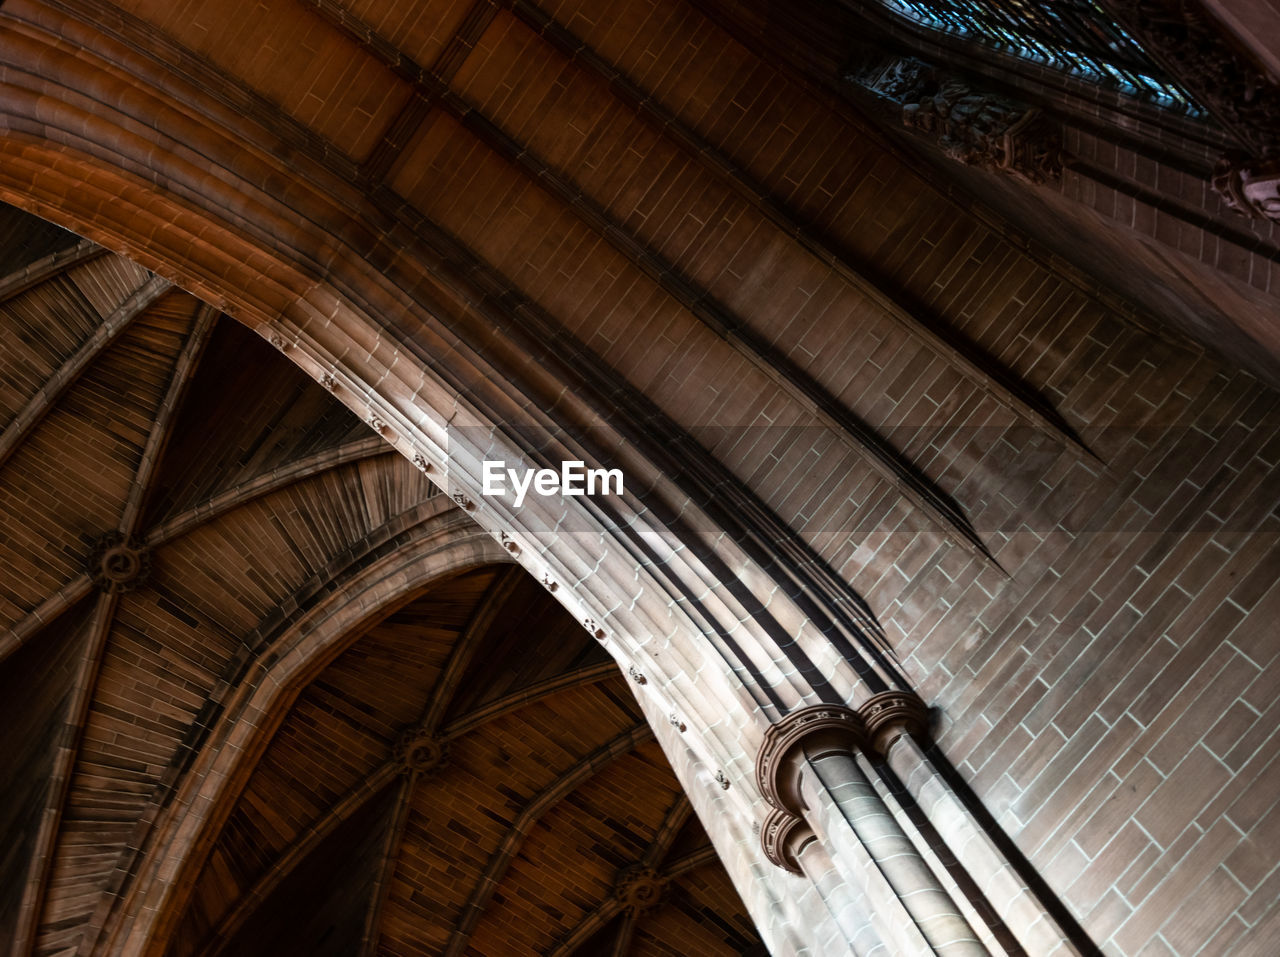 built structure, architecture, low angle view, the past, history, no people, ceiling, indoors, architectural column, place of worship, building, arch, religion, belief, spirituality, travel destinations, architectural feature, directly below, roof beam